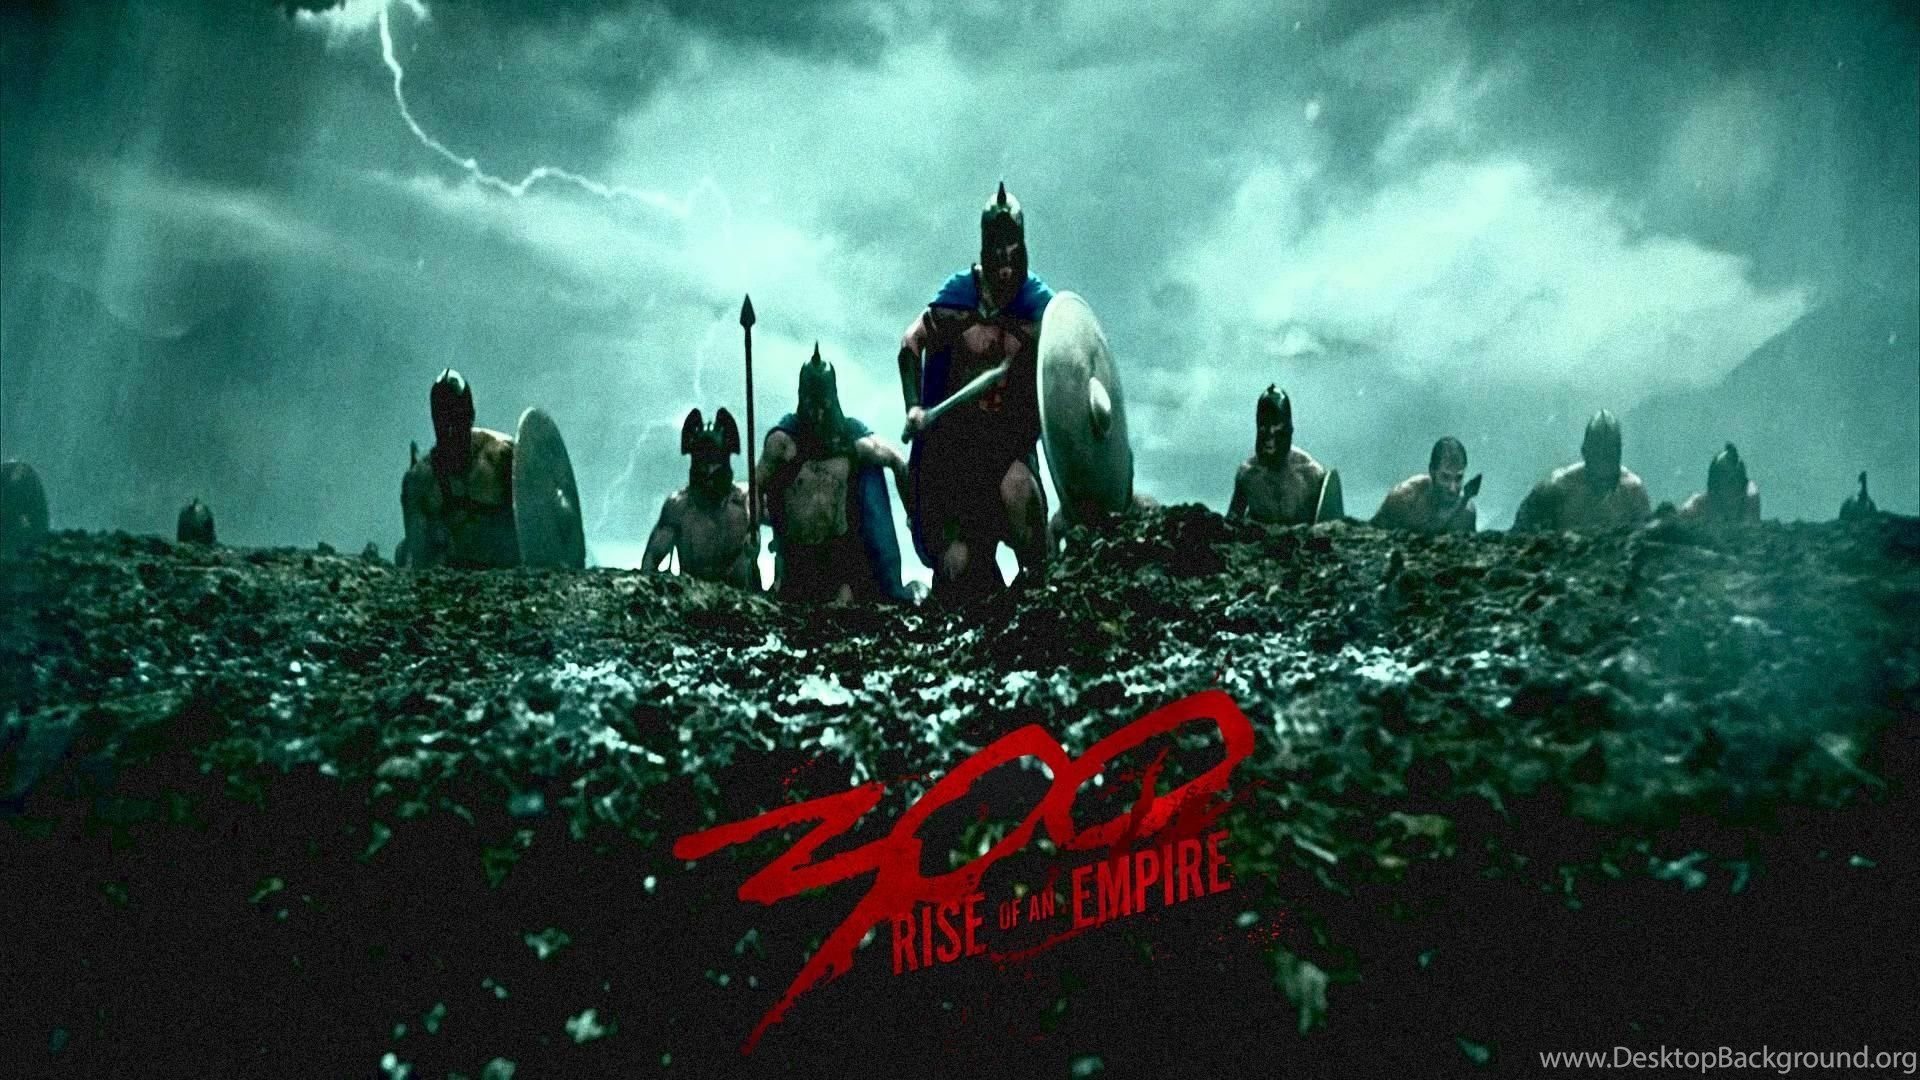 300 rise of an empire movie hd wallpapers walljpeg desktop background